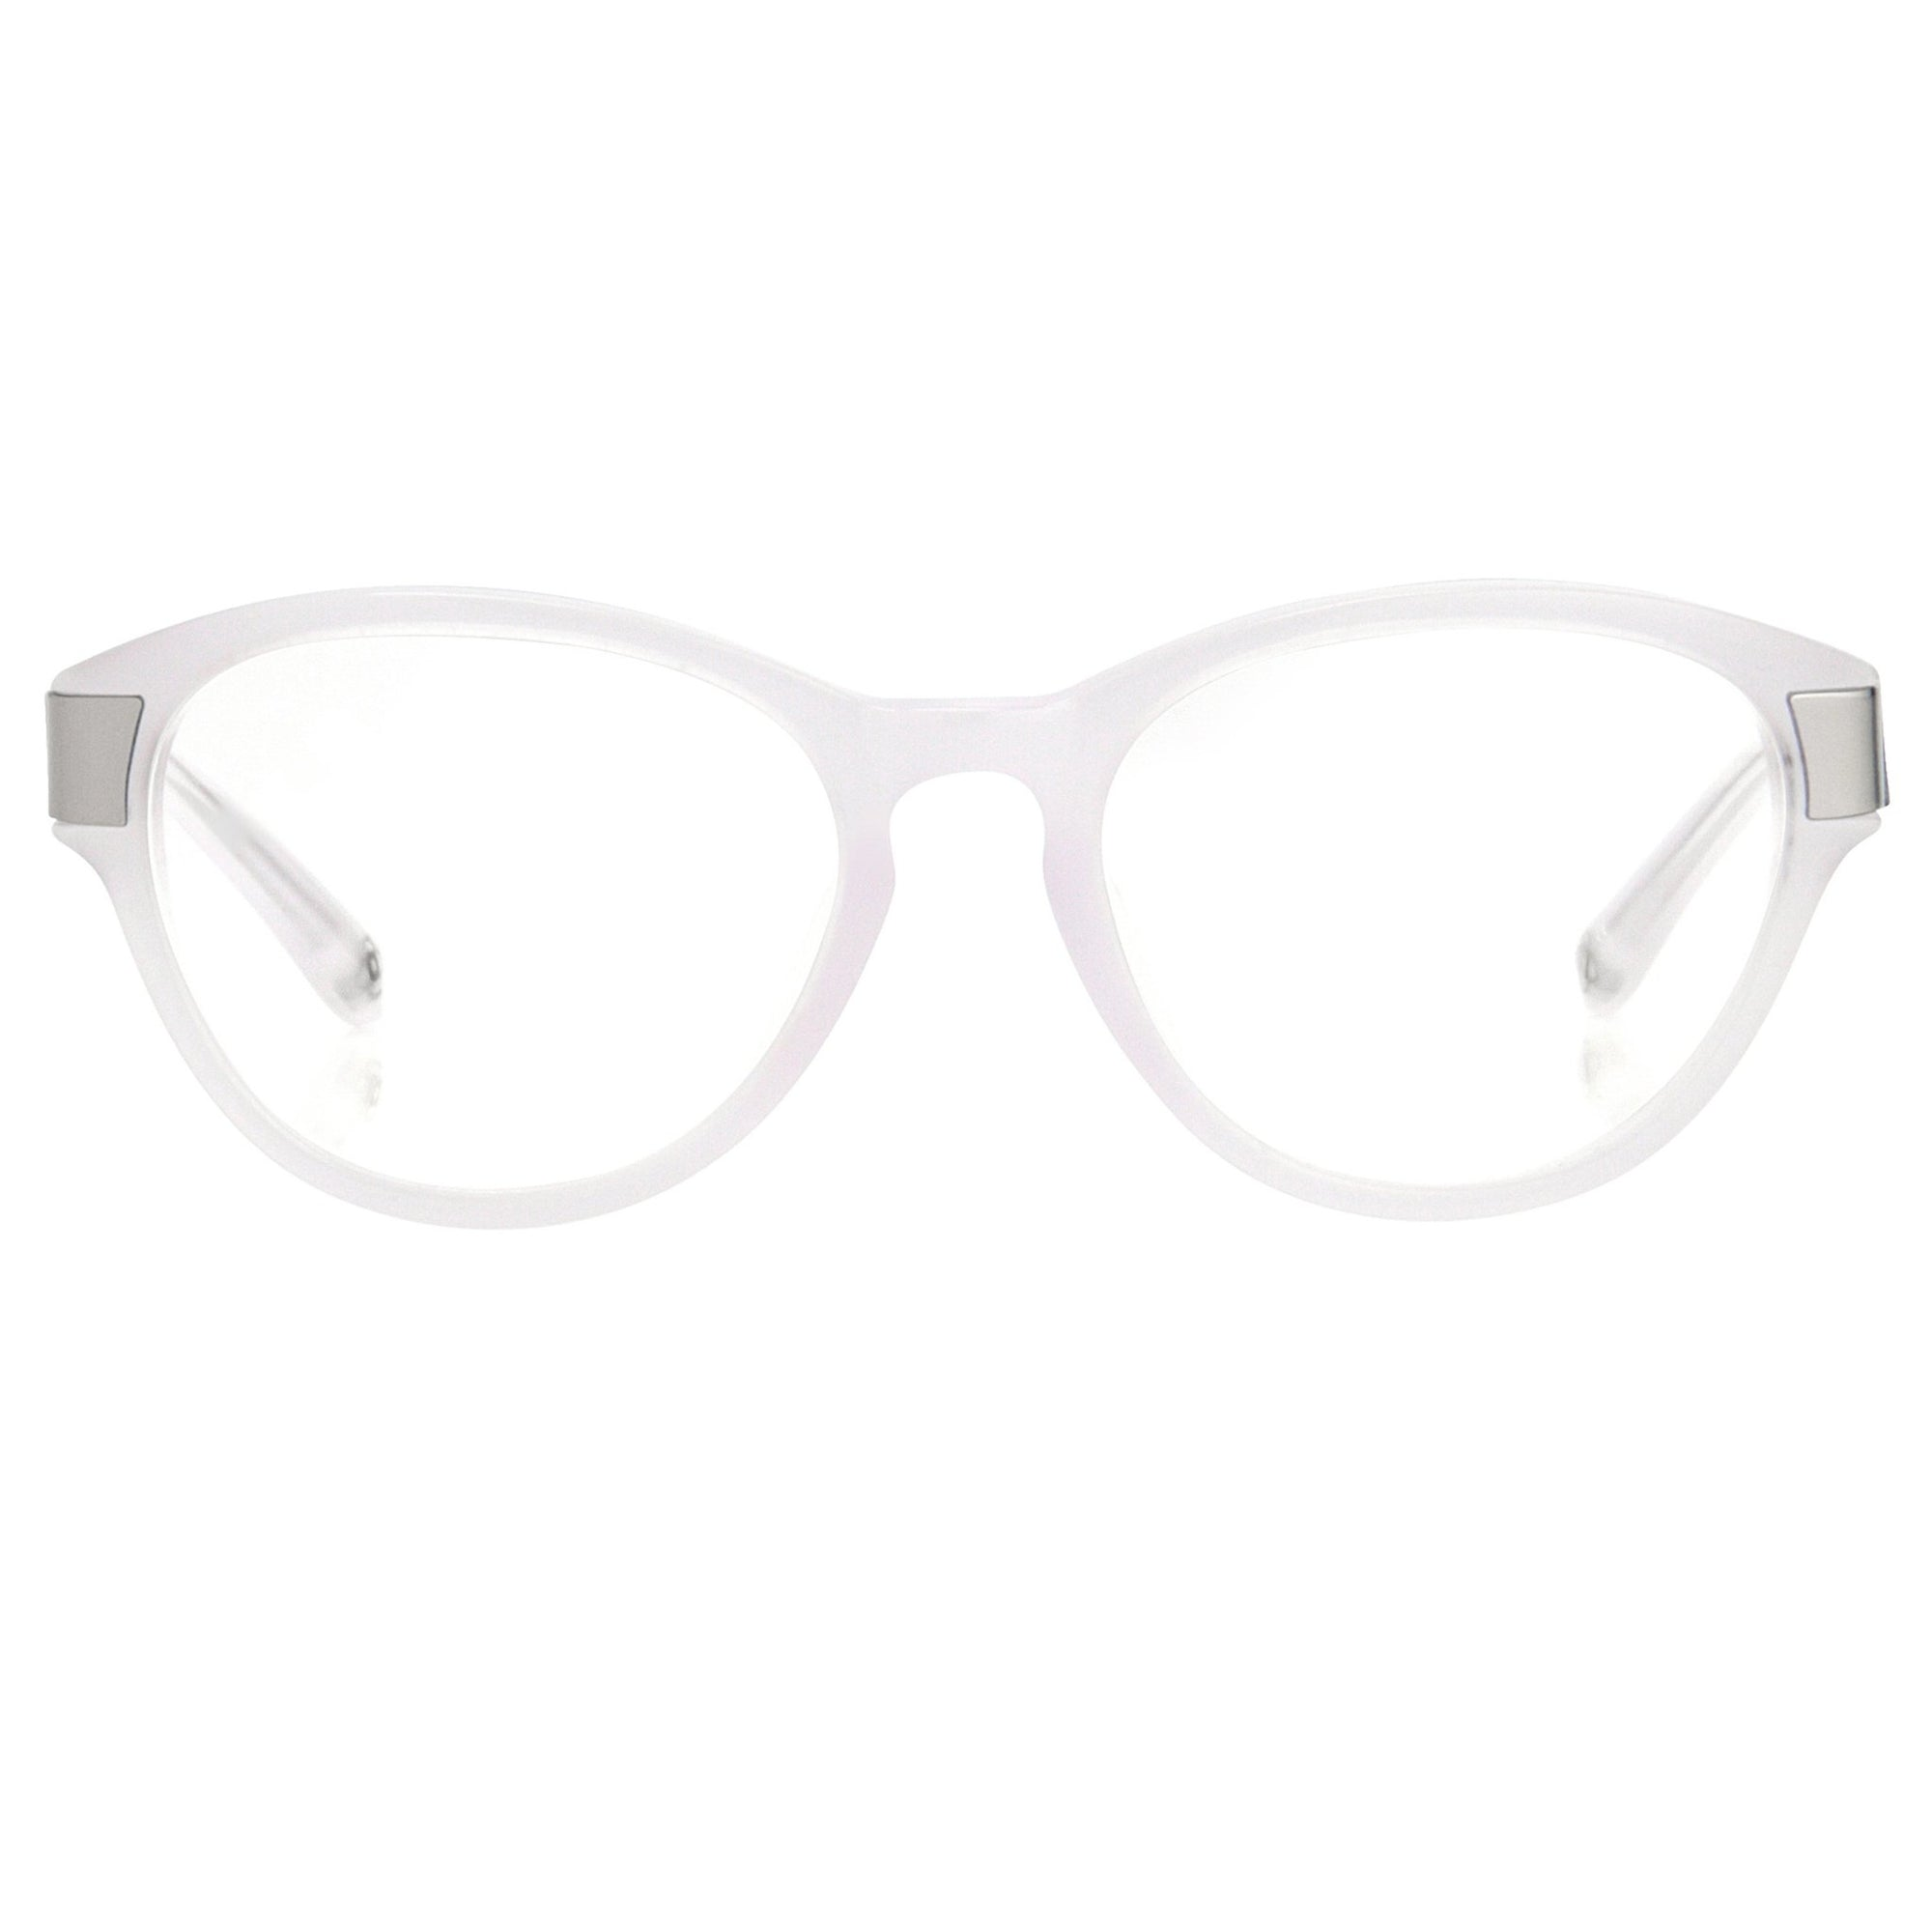 Oscar De La Renta Women Eyeglasses Oval Ivory White Mother of Pearl and Clear Lenses - ODLR37C3OPT - Watches & Crystals